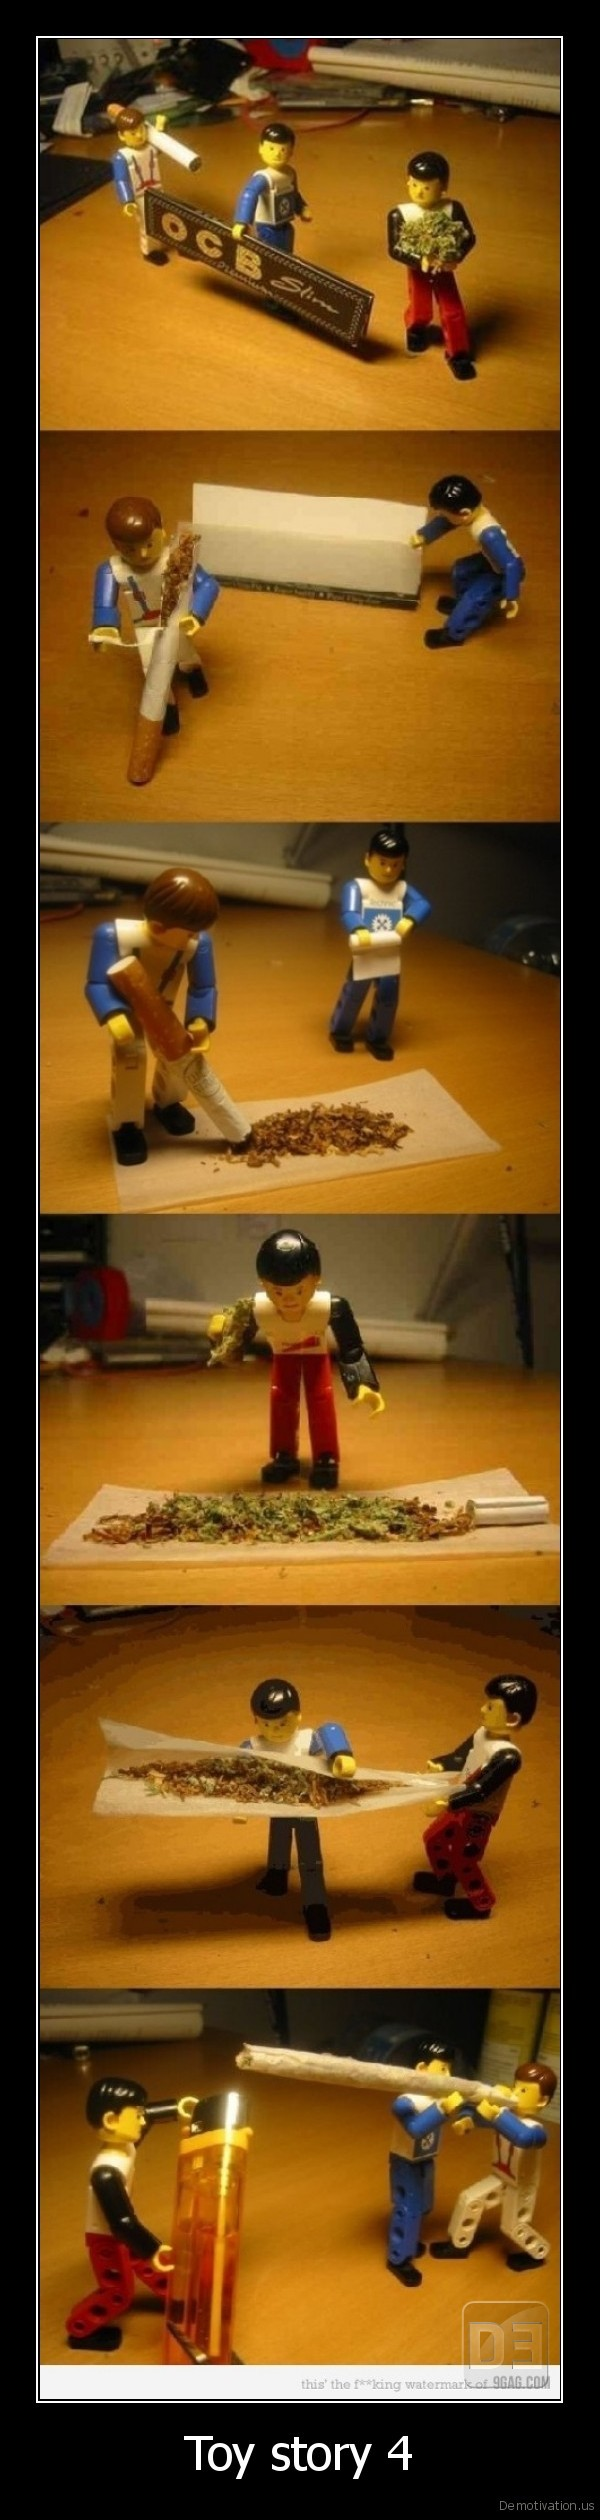 Toy story 4 -